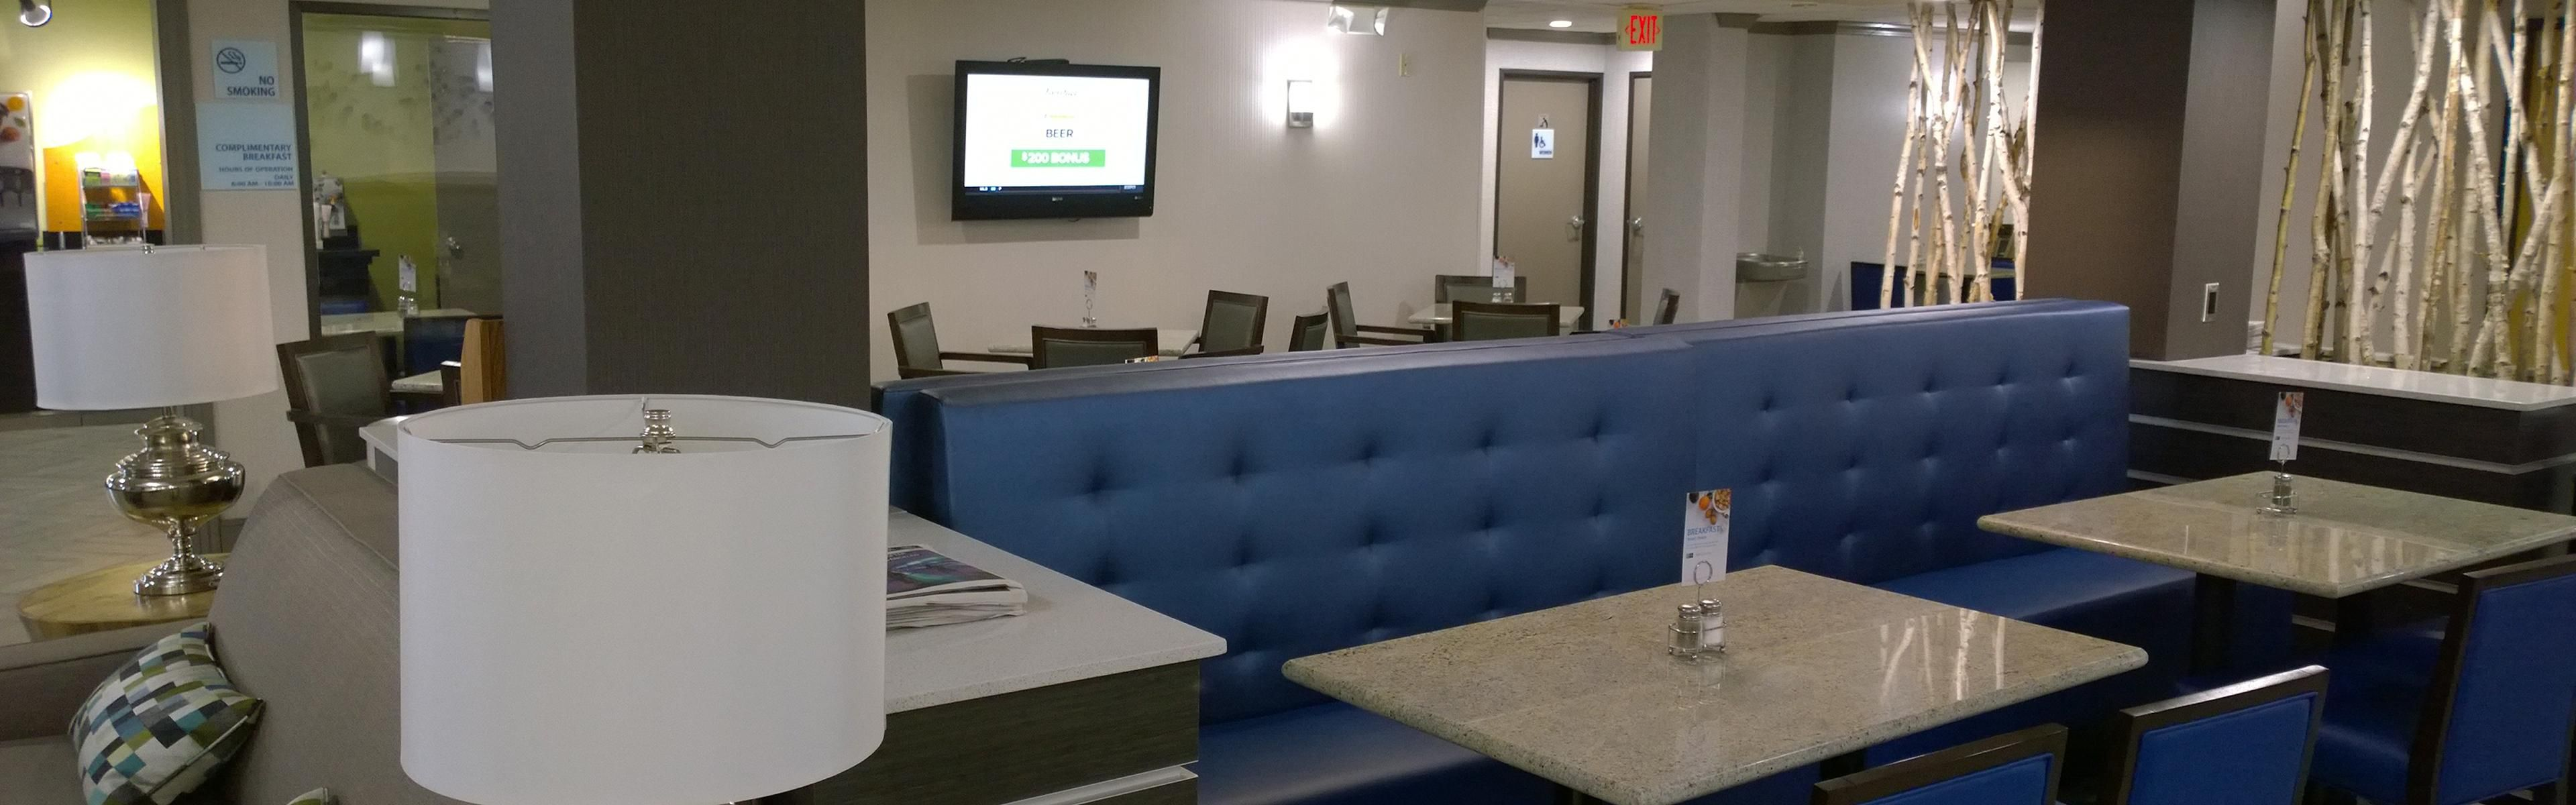 Superb Holiday Inn Express U0026 Suites Fayetteville Univ Of Ar Area Hotel By IHG